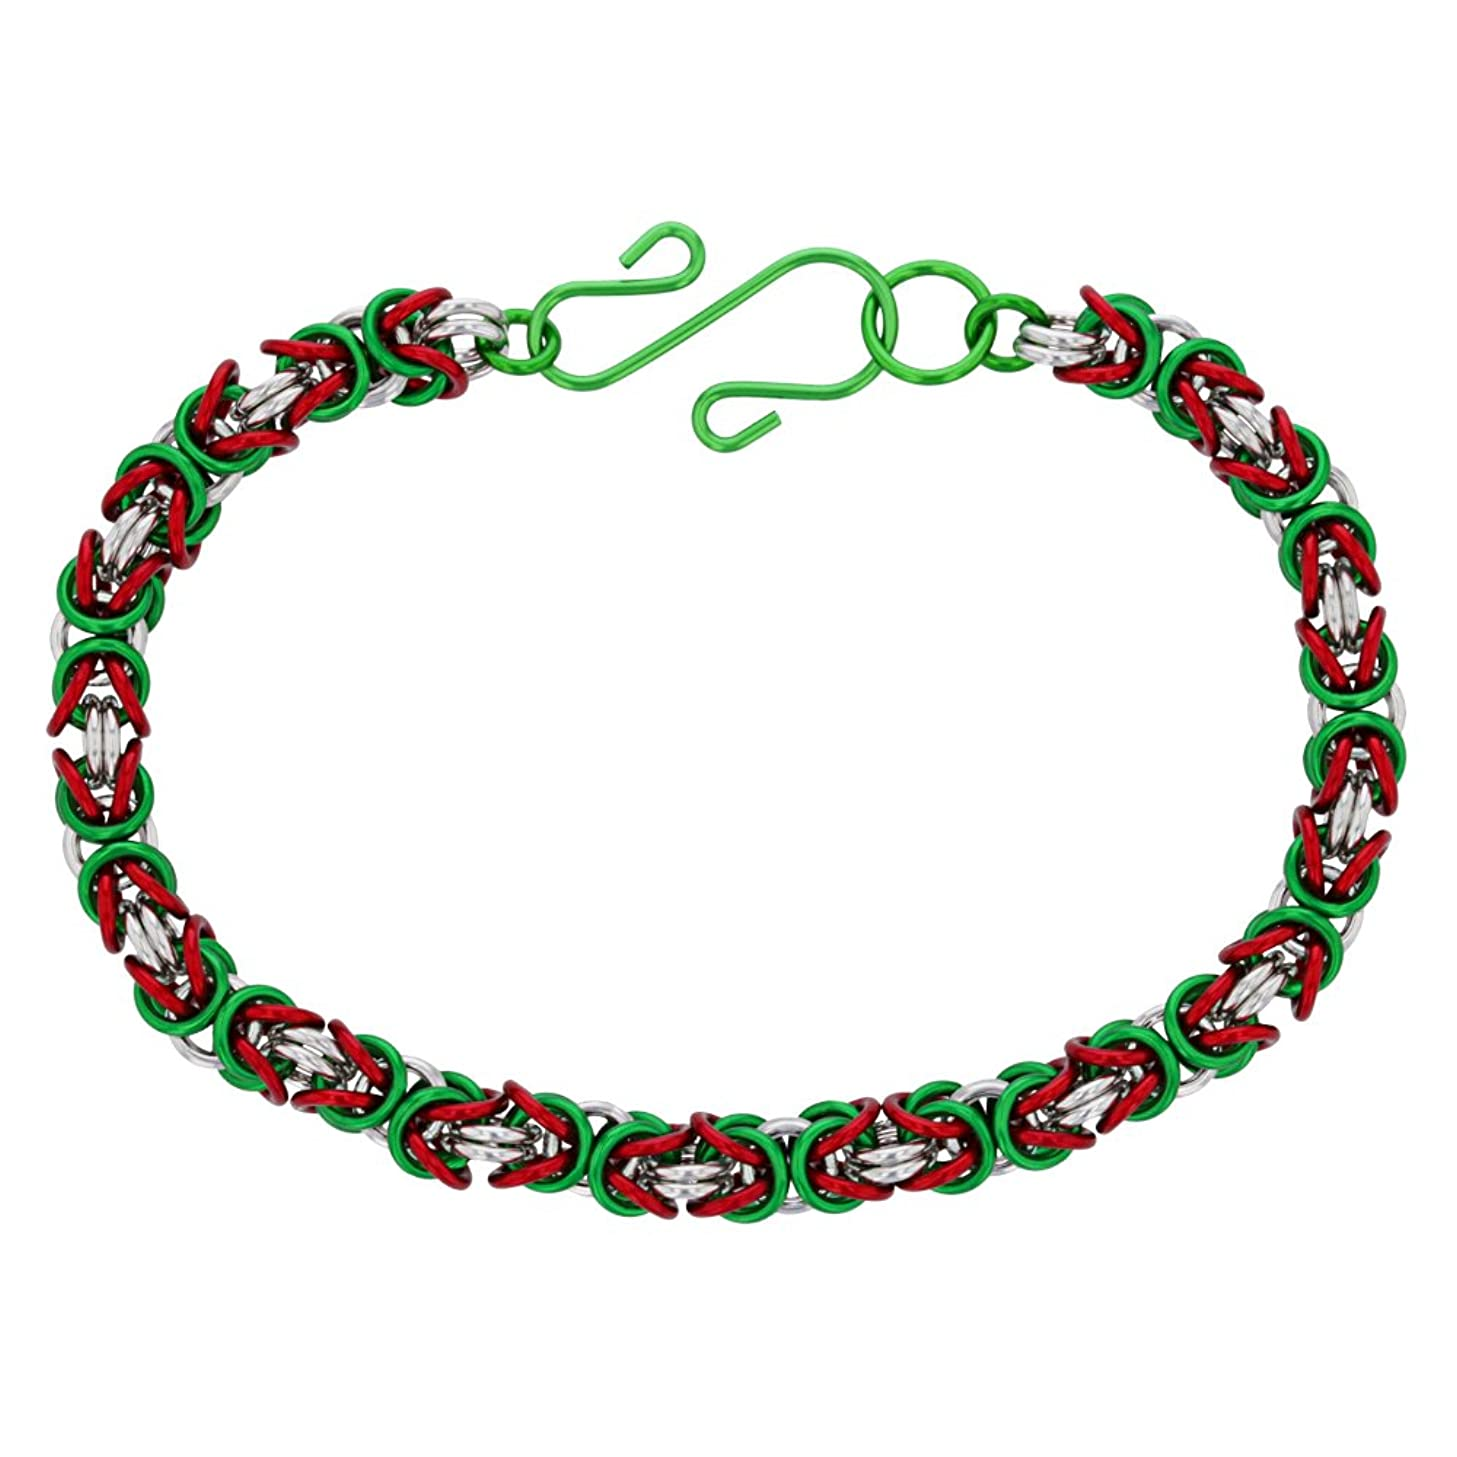 Weave Got Maille Mrs. Clause 3 Color Byzantine Chainmaille Bracelet Kit, 3 Piece